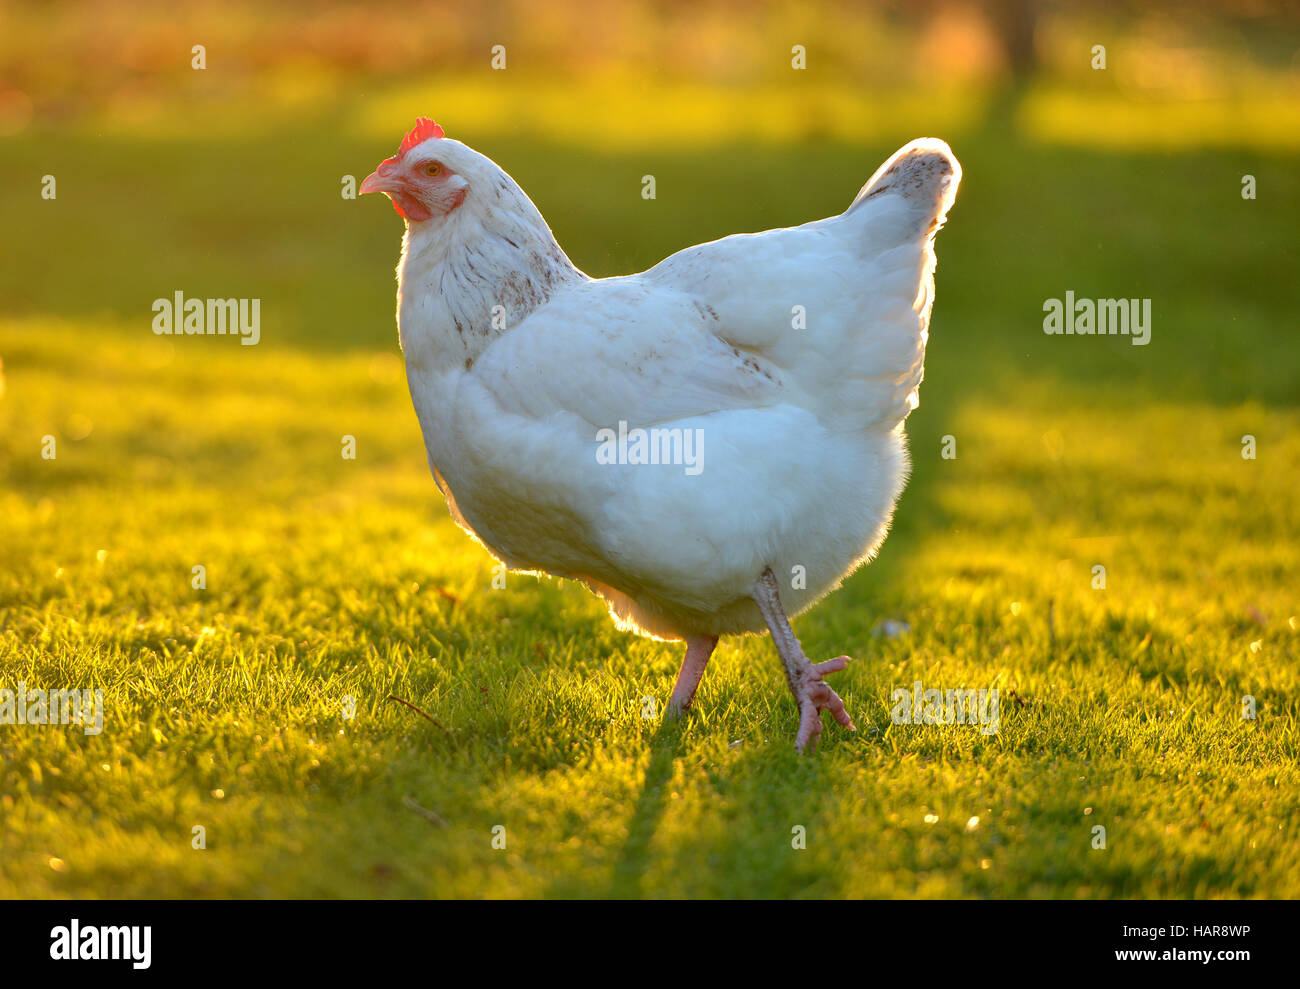 Chickens in a back garden with golden sunlight. Stock Photo